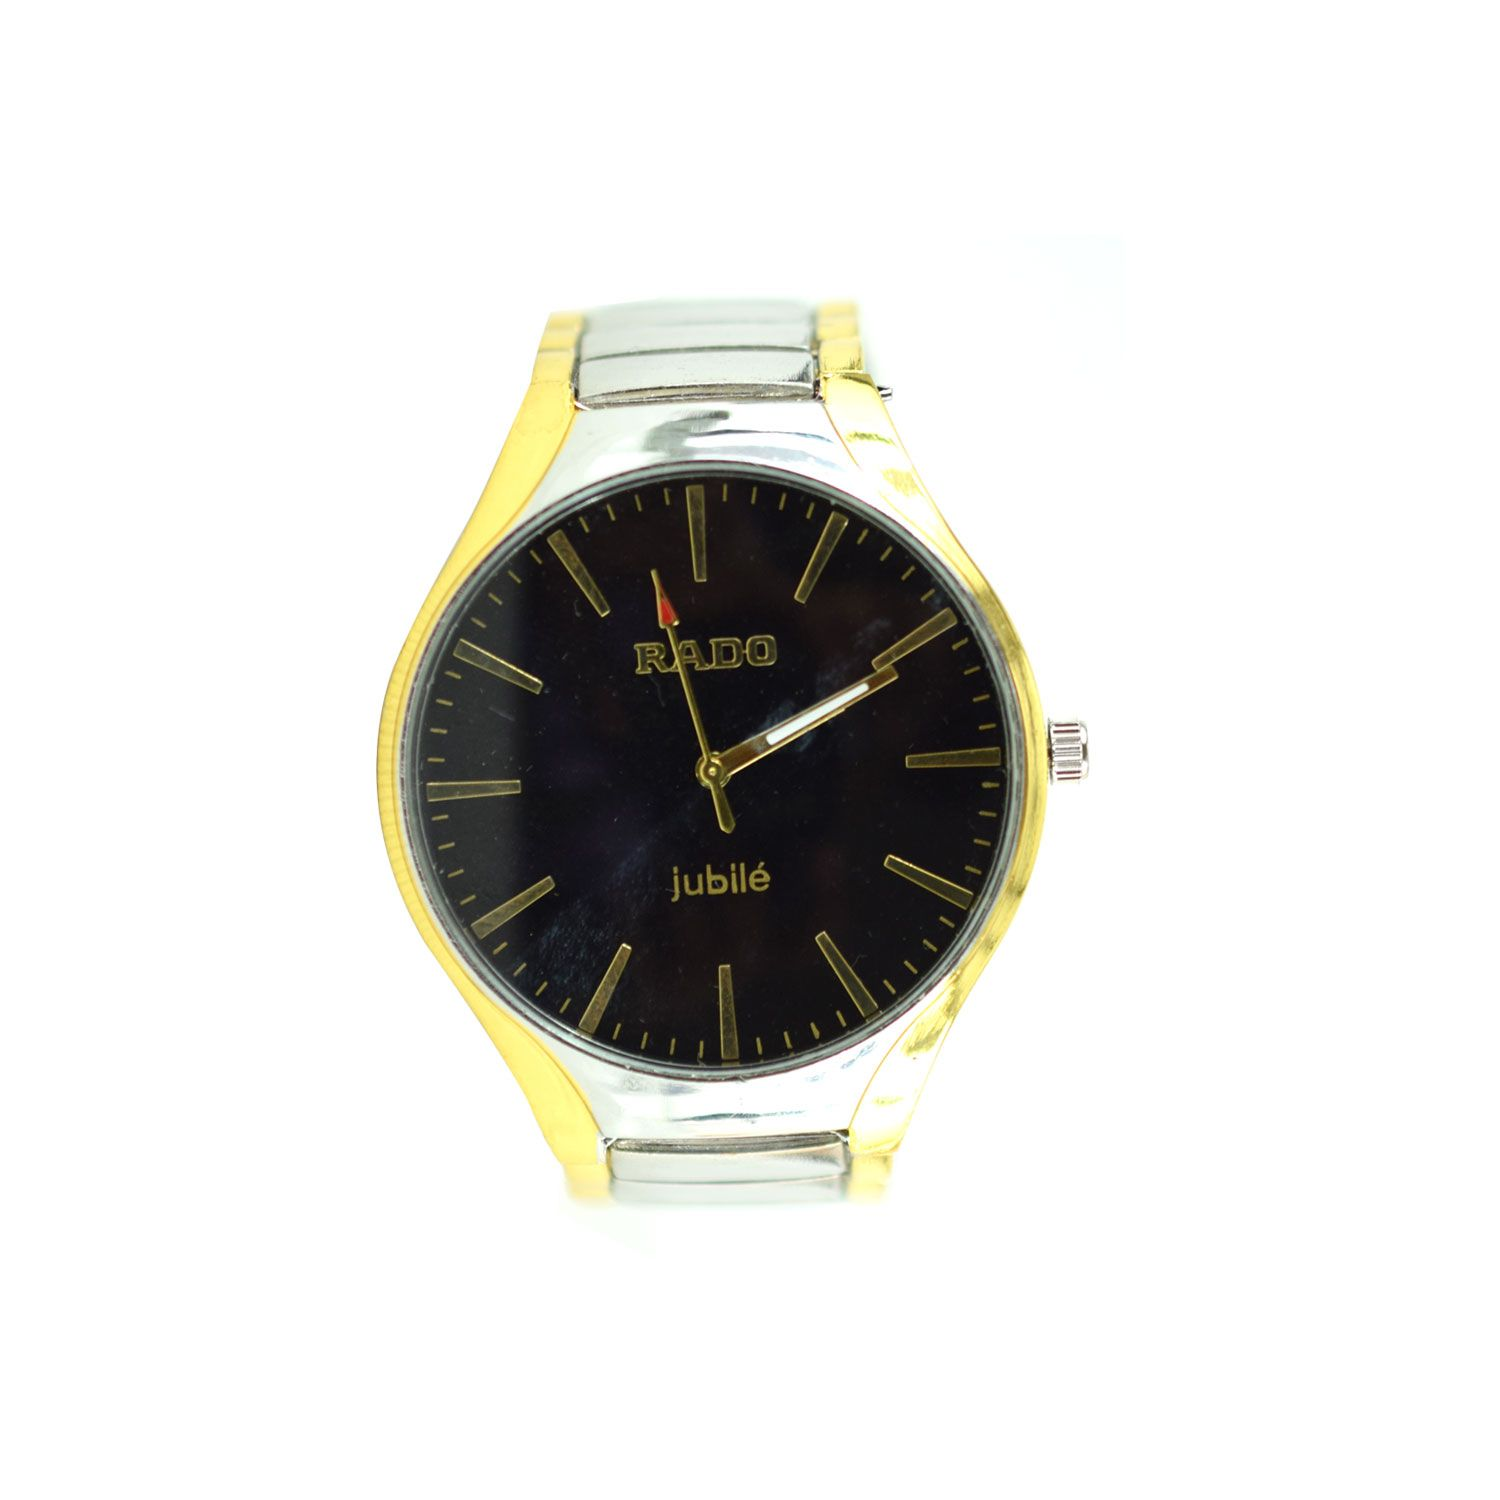 Rado Silver Metal Watch For Men With Images Watches For Men Metallic Silver Watches